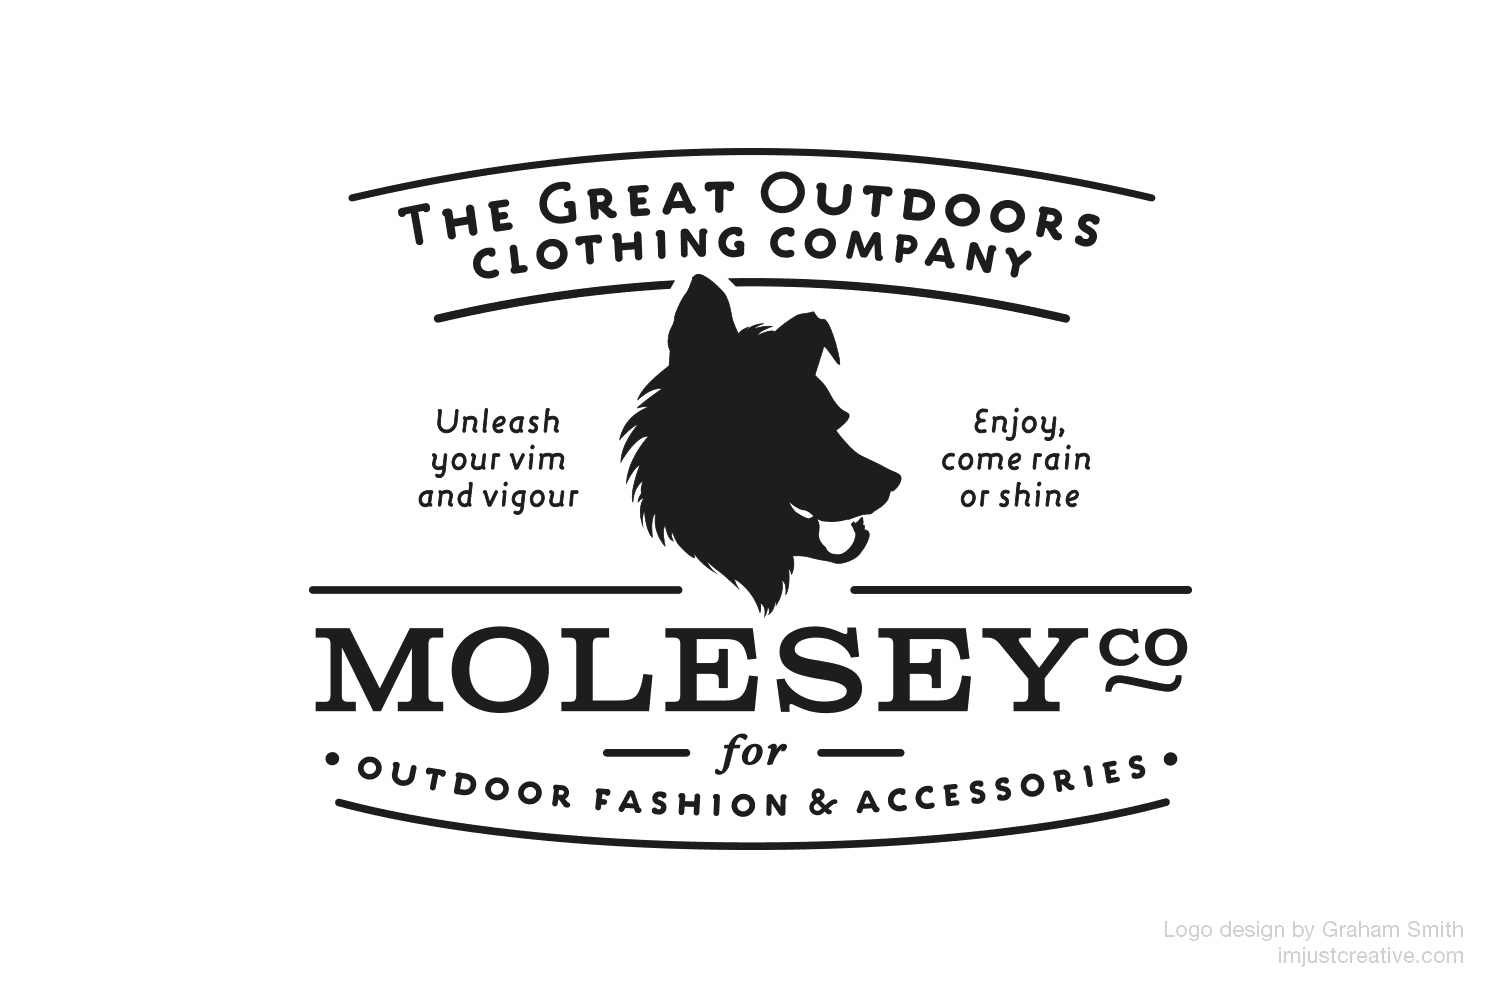 MoleseyCo logo design 3 by imjustcreative